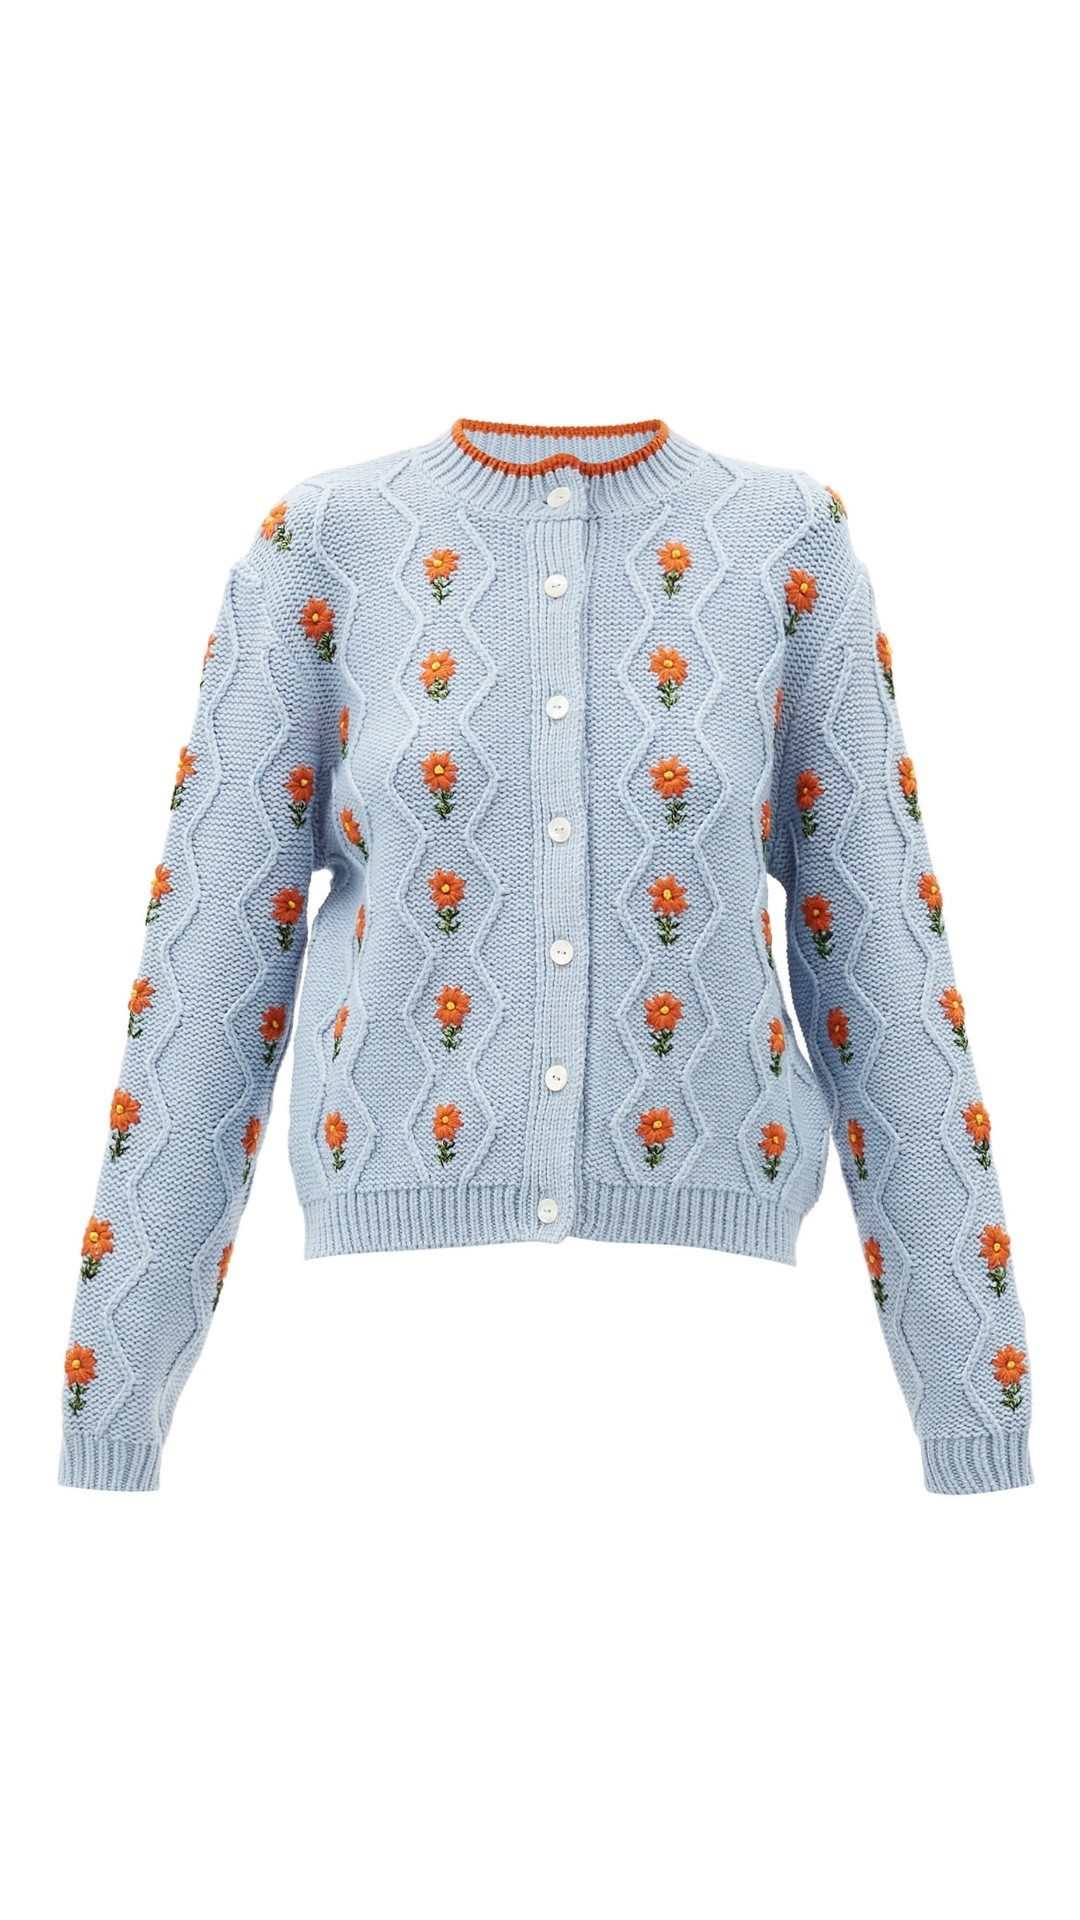 SHRIMPS Bennett floral wool-blend cardigan